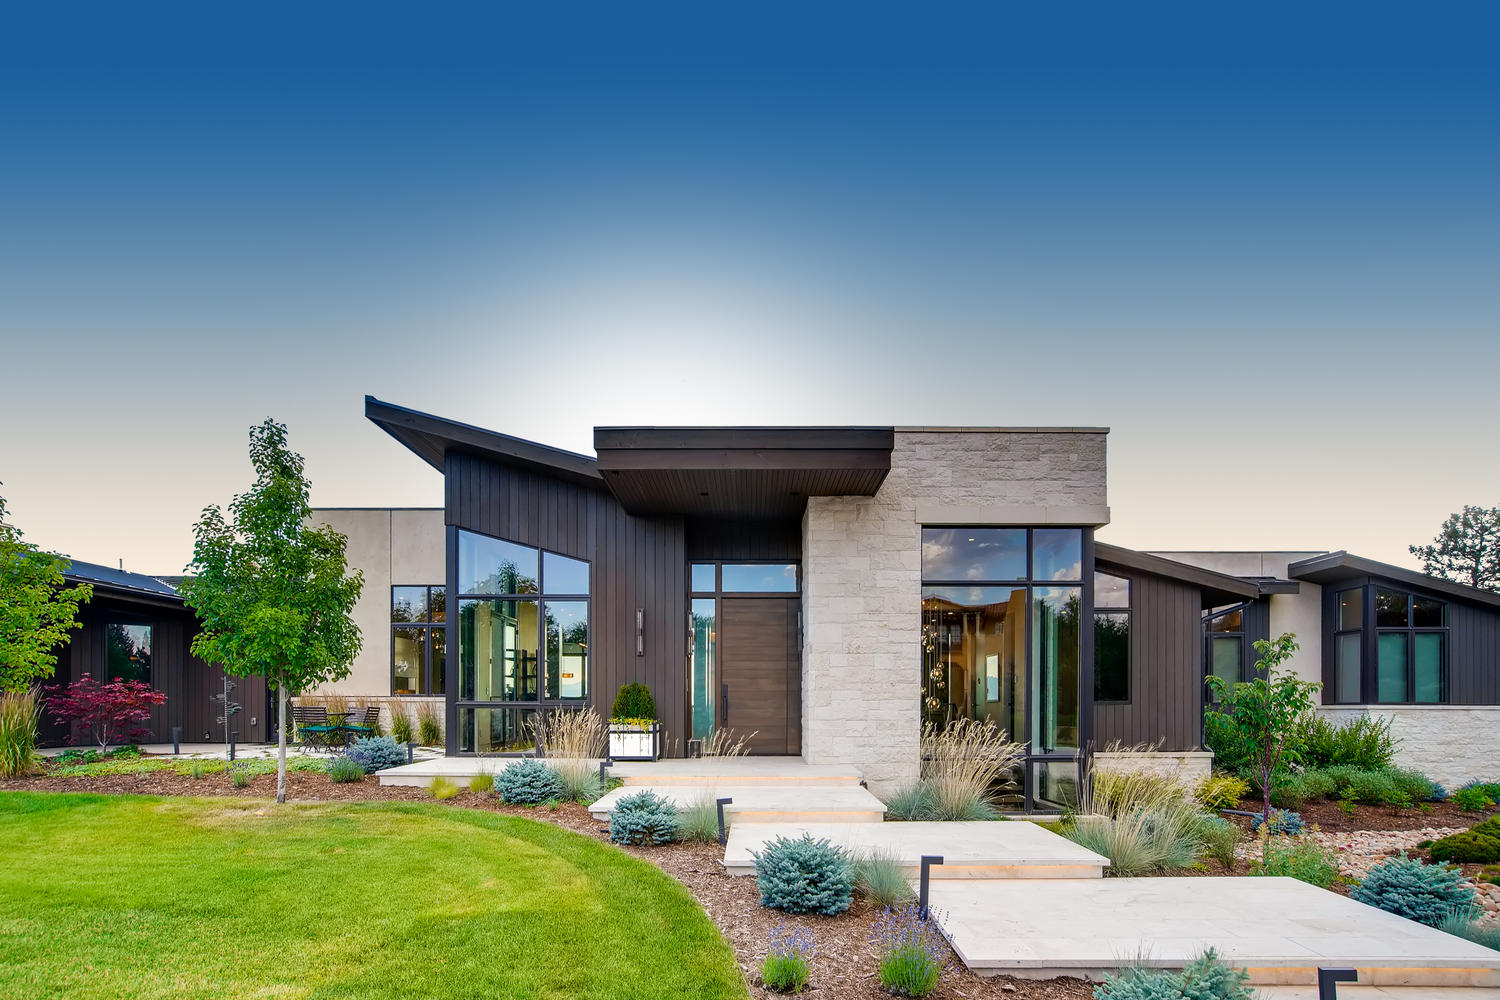 Modern Denver home designed by Godden Sudik Architects with stone accents and modern wood paneling exterior details.